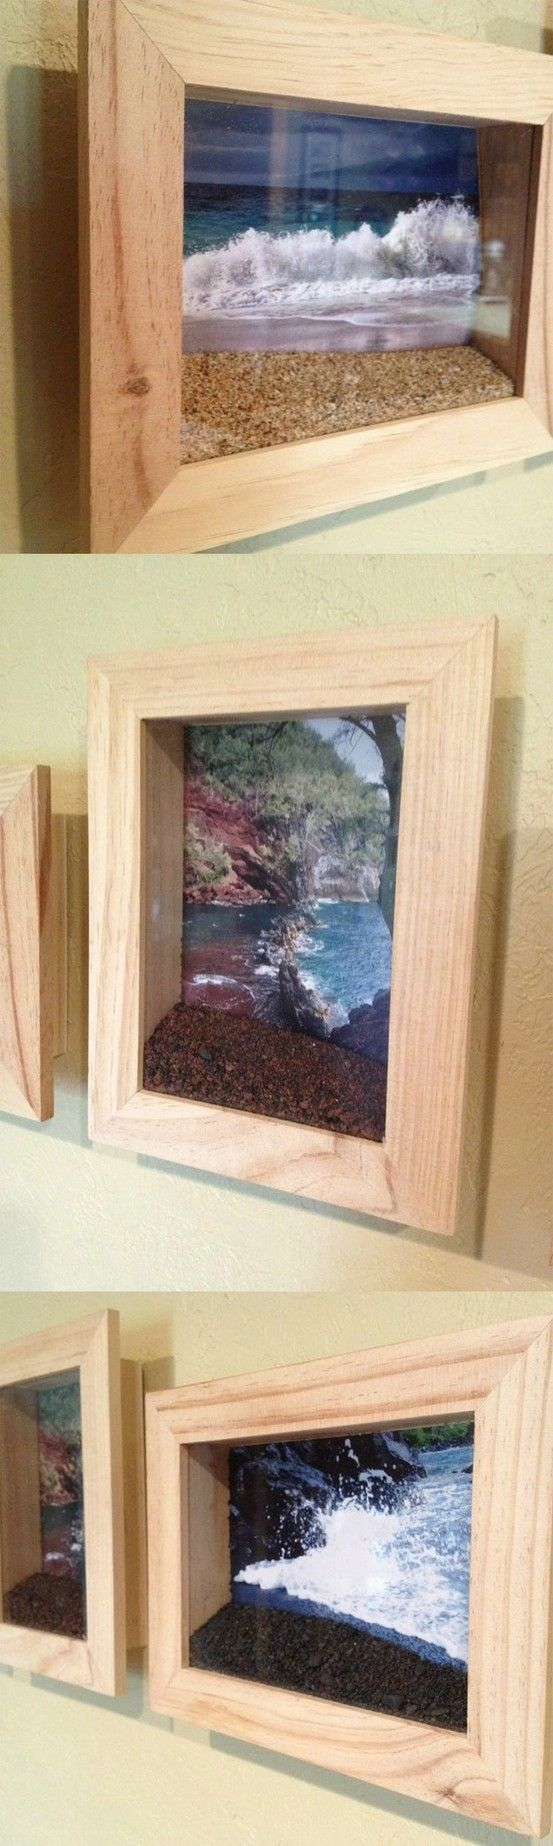 Put a picture of the beach you visited in a shadow box frame and fill the bottom with sand from that beach | DiyReal.com